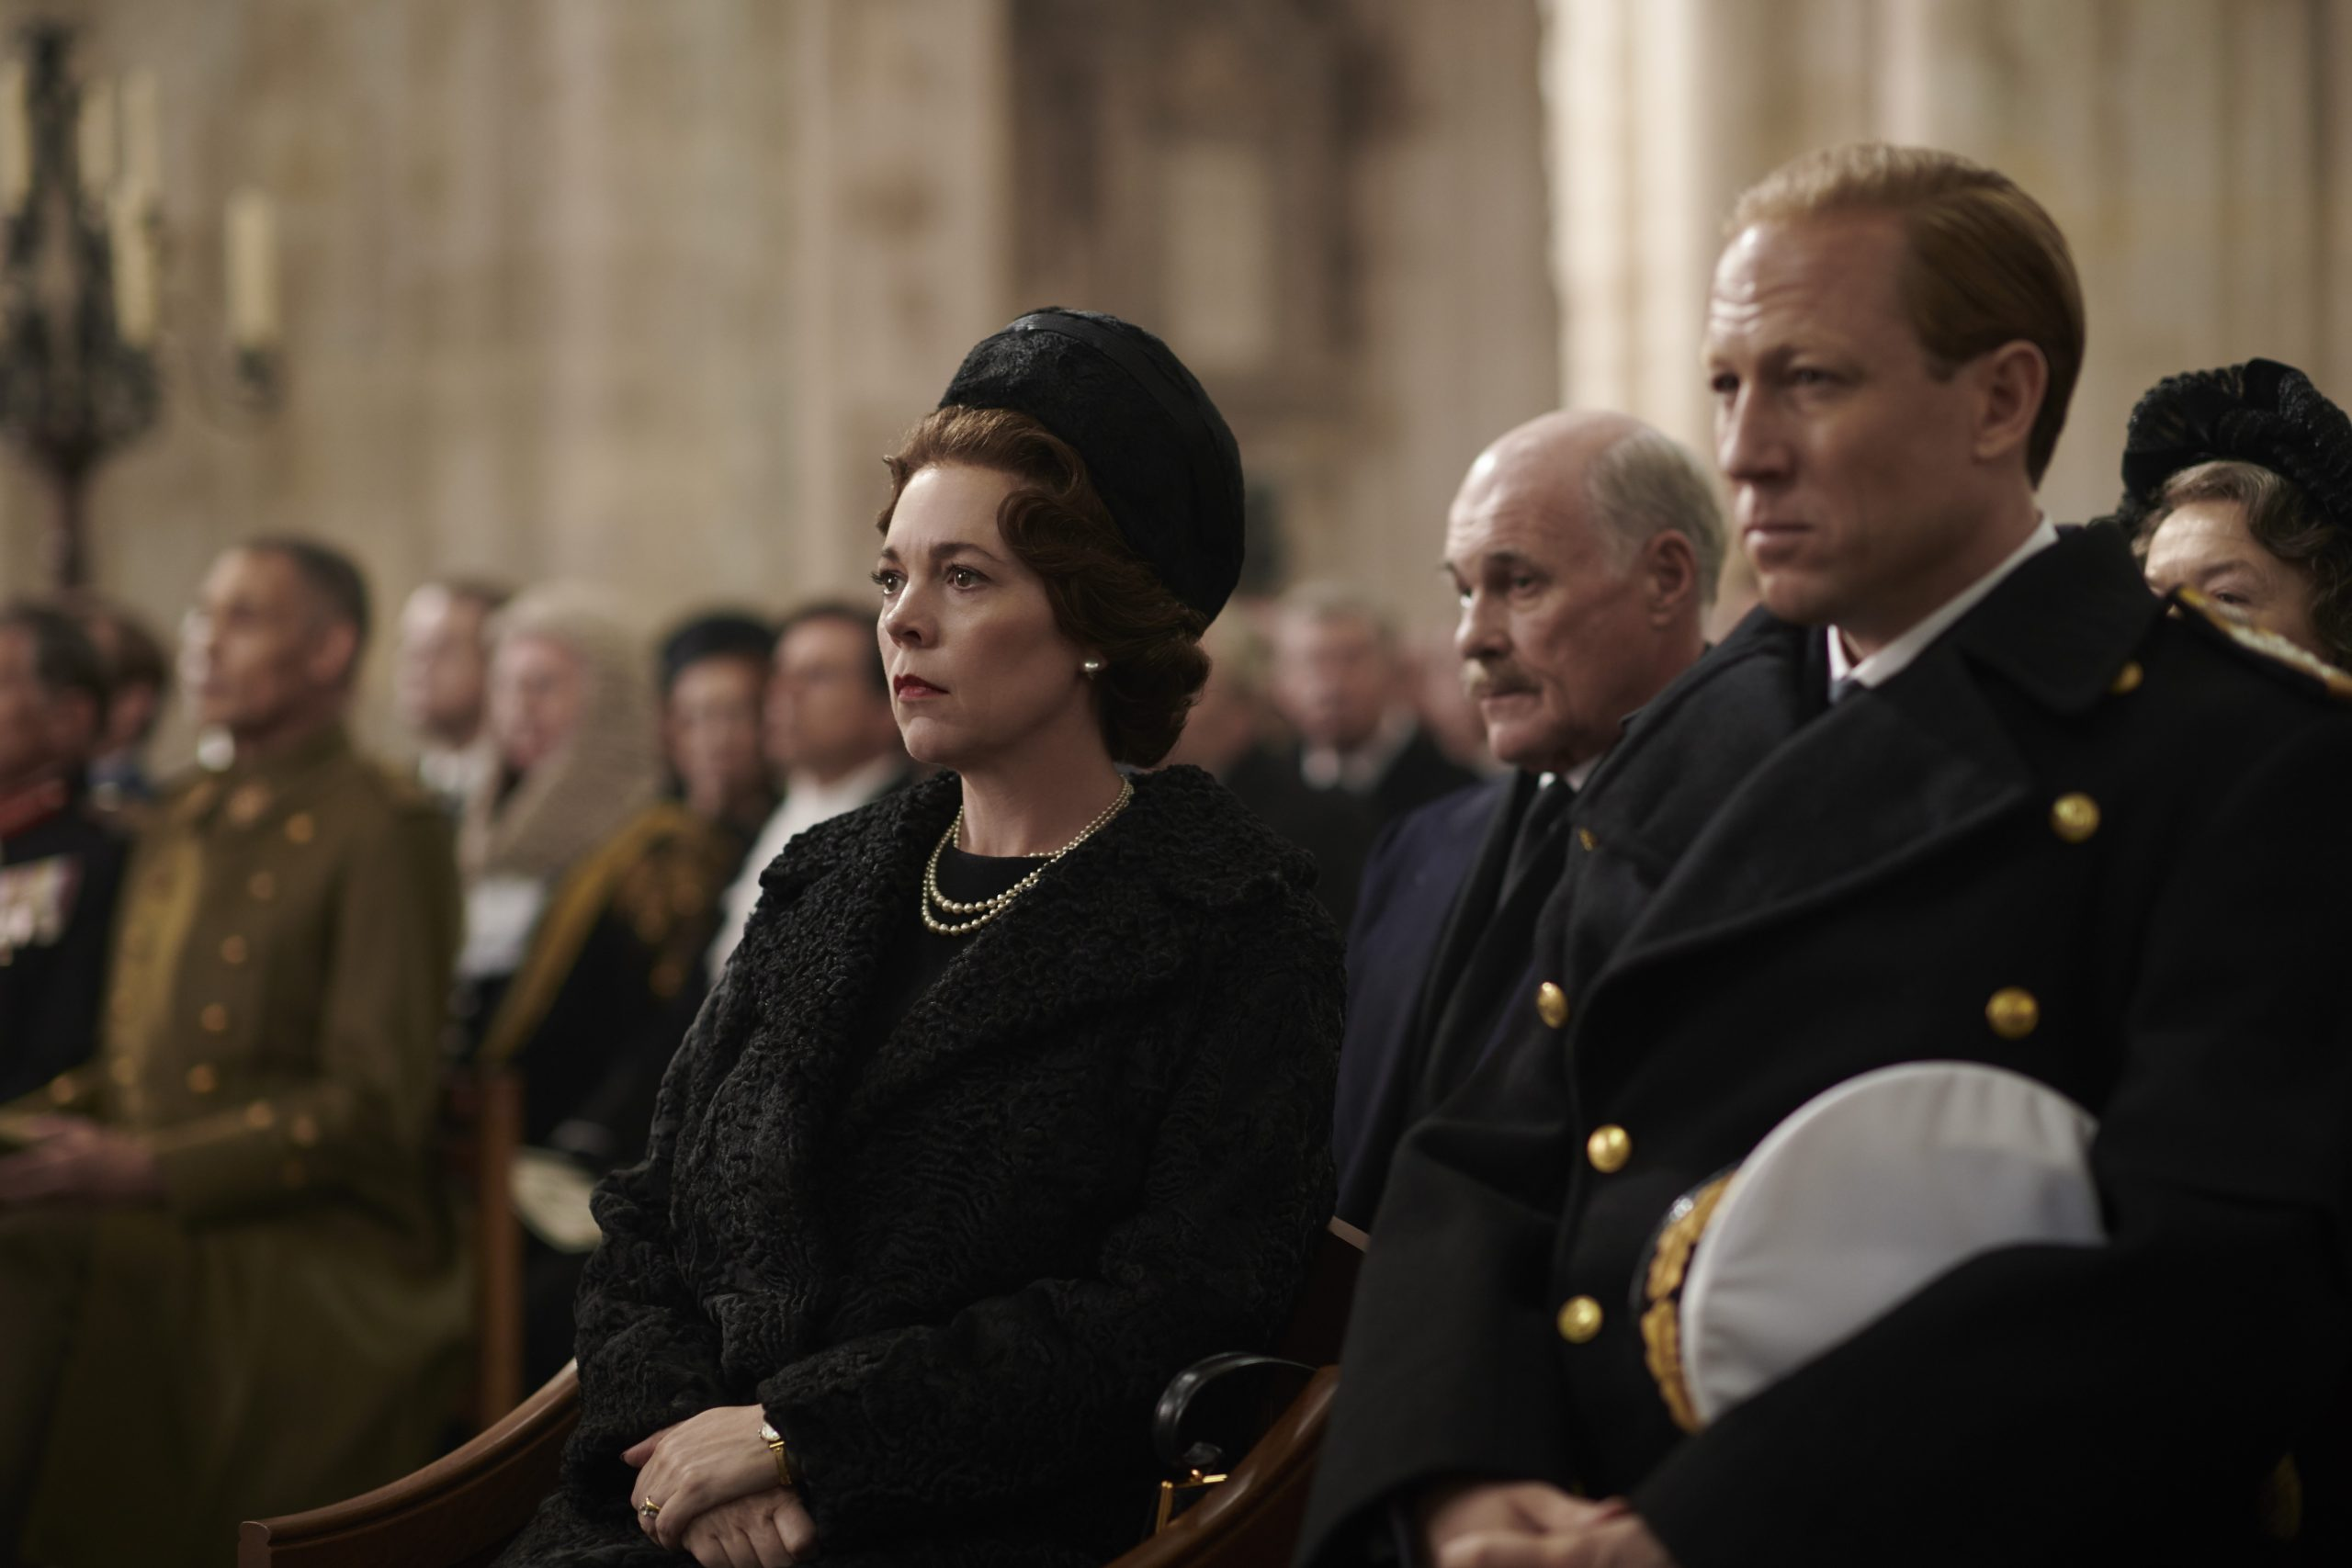 The Crown season 3 on Netflix